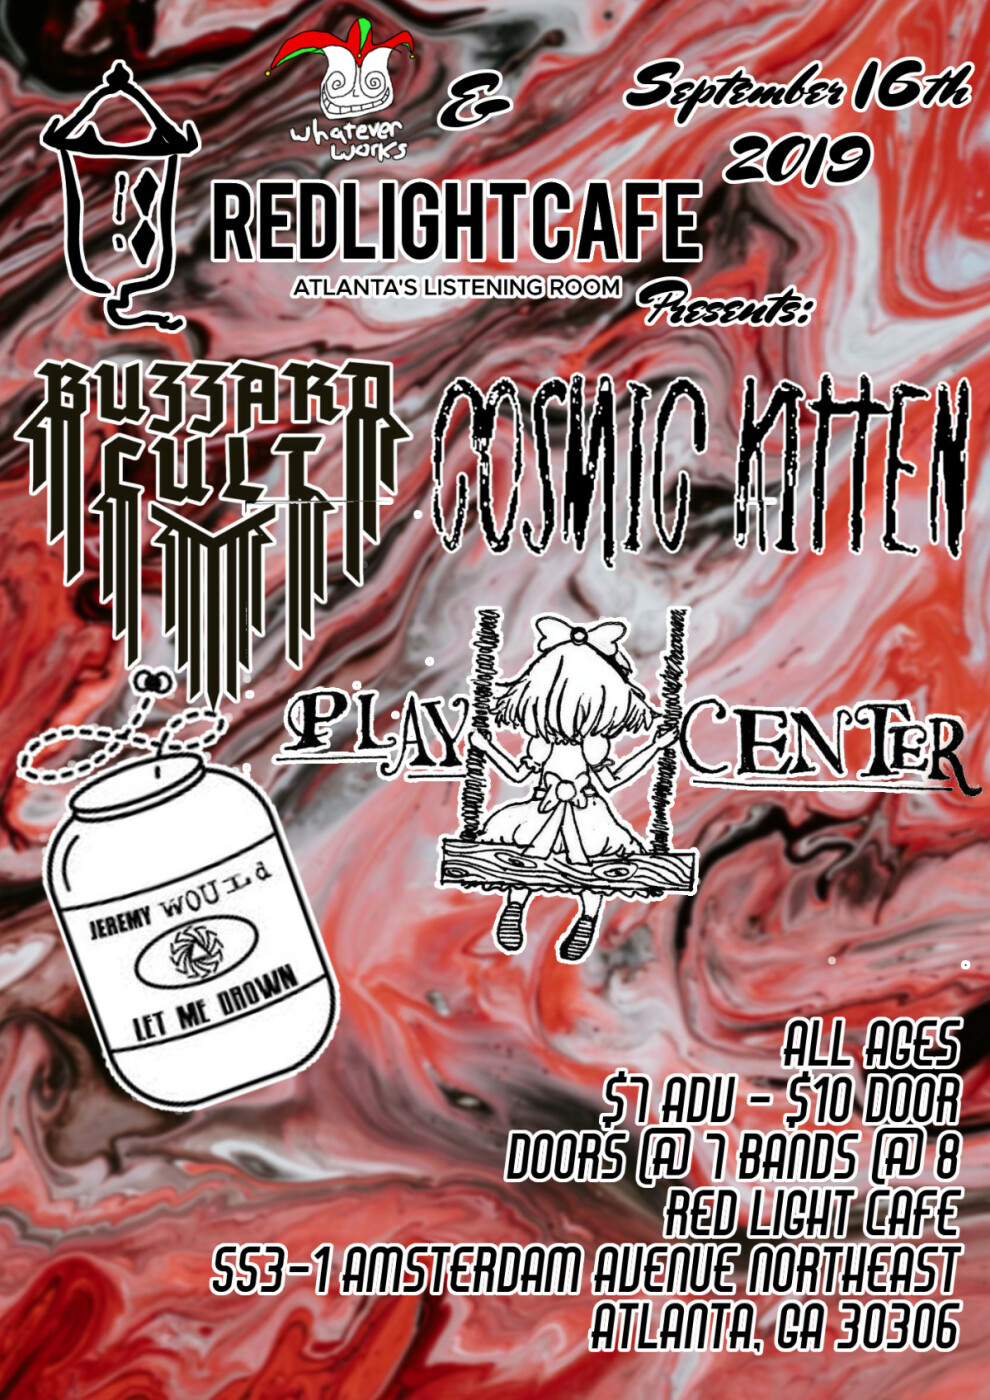 Play Center Jeremy Would Let Me Drown Cosmic Kitten Buzzard Cult At Red Light Cafe Atlanta Ga Sep 16 2019 Poster 1200